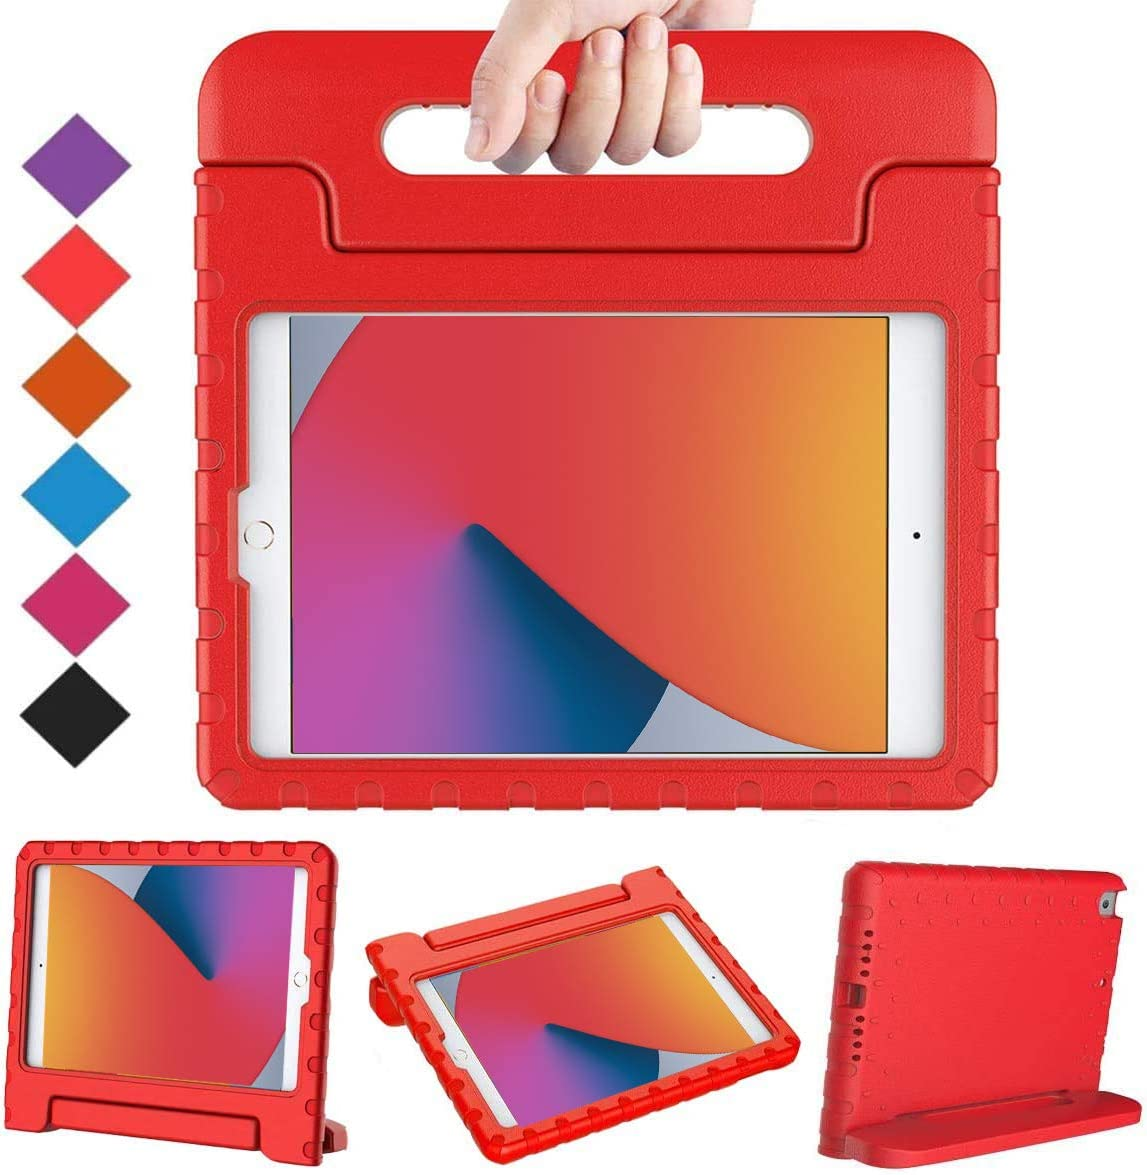 BMOUO Kids Case for iPad 10.2 2020/2019, iPad 10.2 Case, iPad 8th/7th Generation Case, Shock Proof Light Weight Convertible Handle Stand Kids Case for Apple iPad 10.2 inch 2020/2019, Red